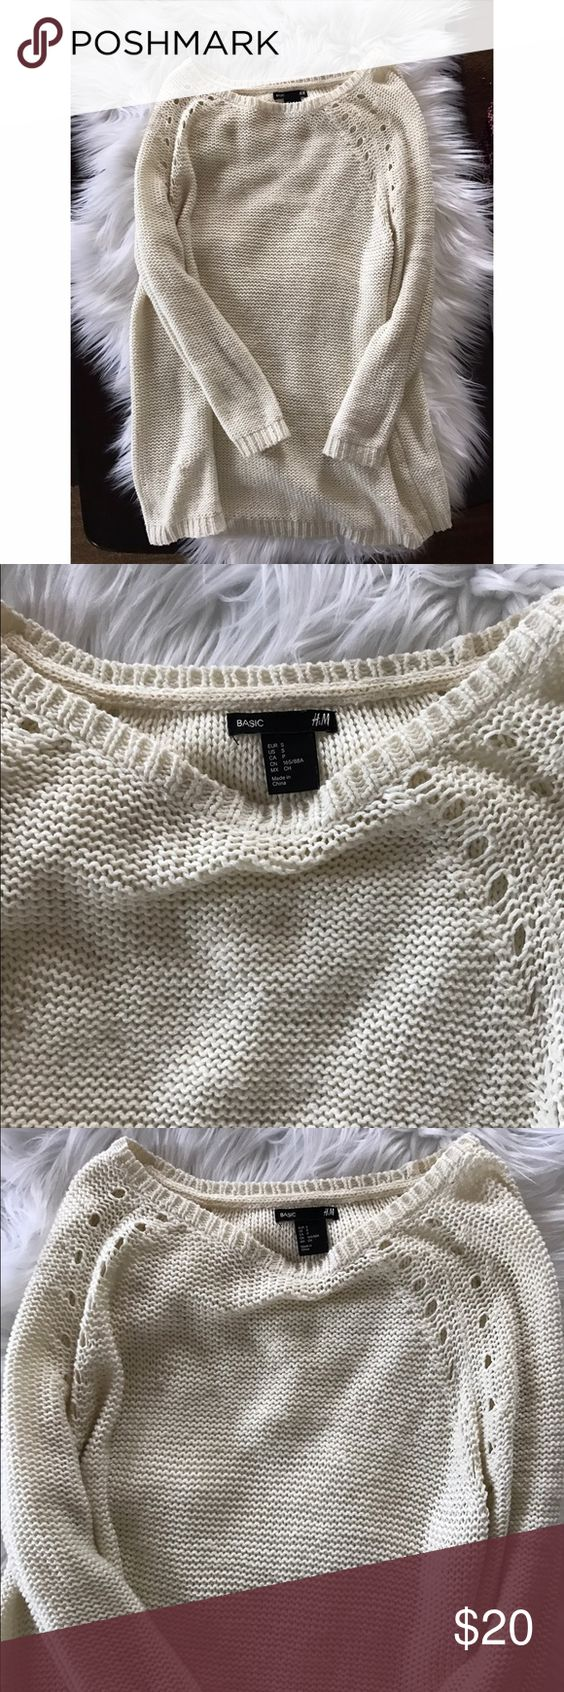 H&M crochet sweater so comfy Great condition H&M Sweaters Crew & Scoop Necks